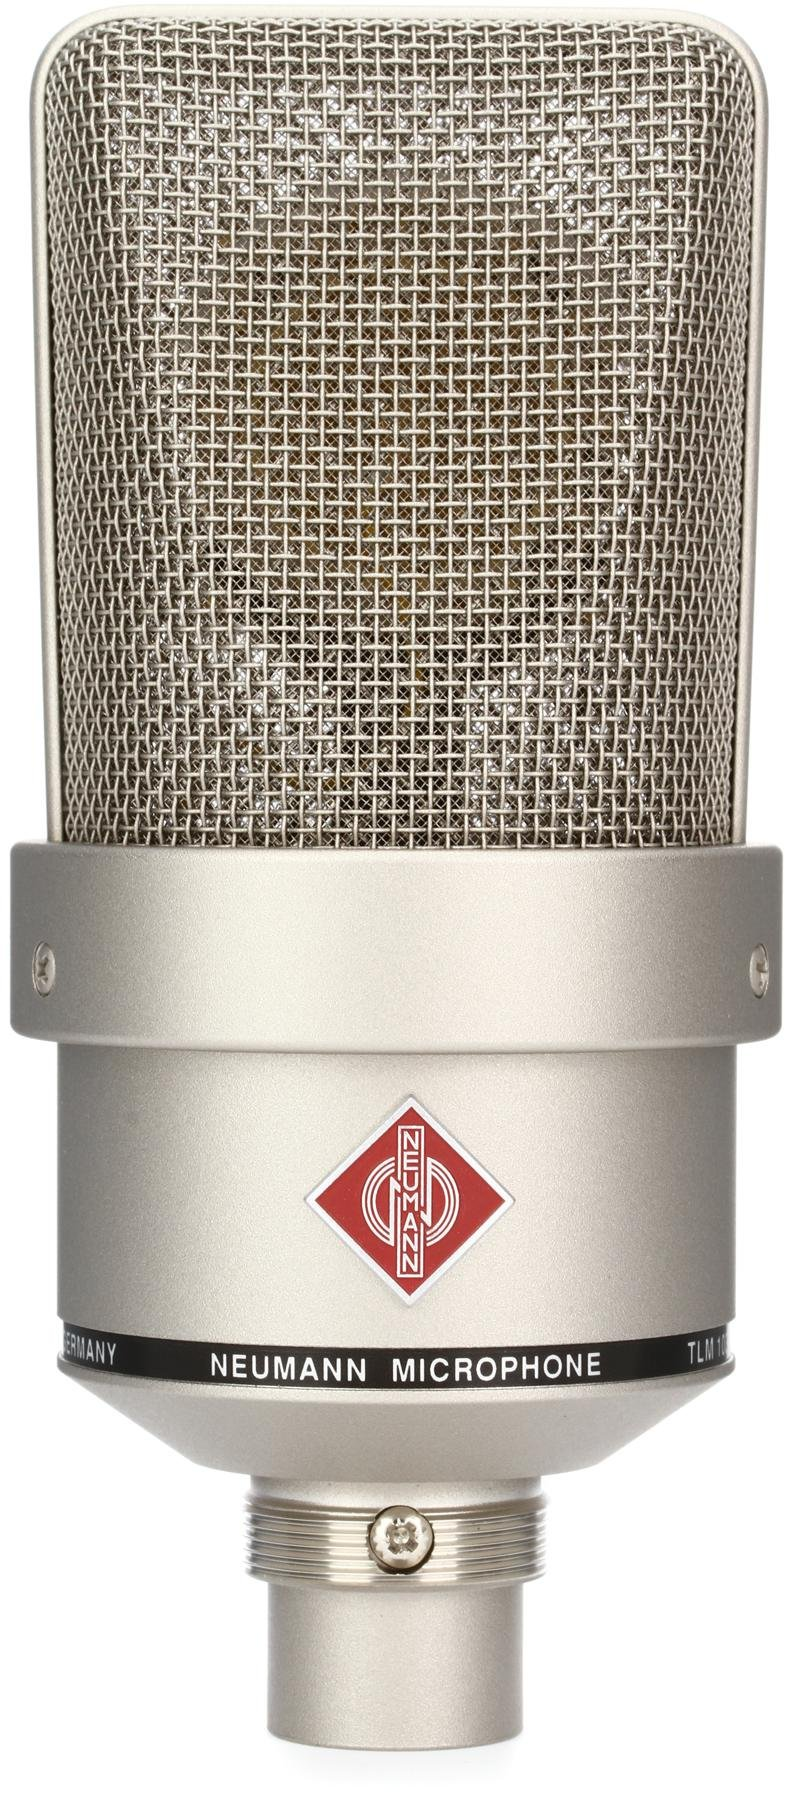 Neumann Tlm 103 Large Diaphragm Condenser Microphone Nickel Theremin World Topic A Digital Project From Glaacuk Image 1